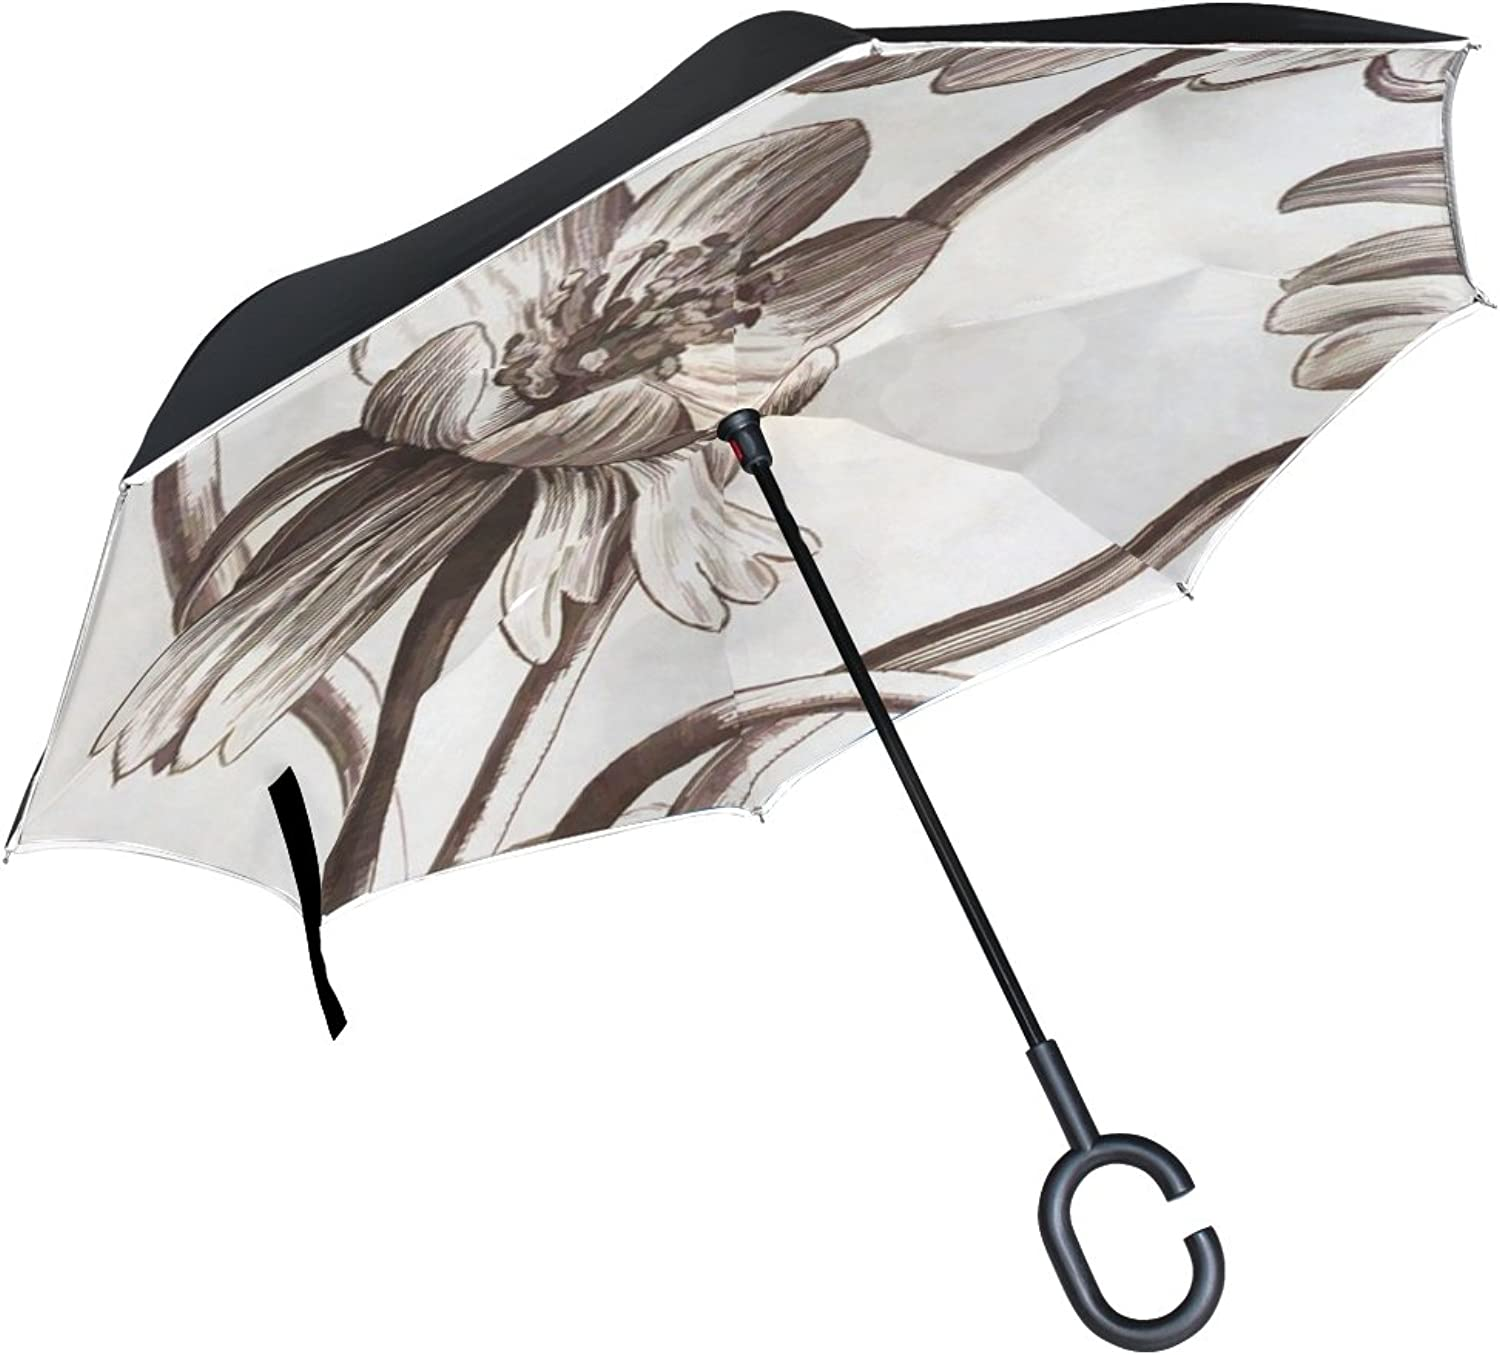 Double Layer Ingreened Floral Sepia Flowers Plant Drawing Vintage Umbrellas Reverse Folding Umbrella Windproof Uv Predection Big Straight Umbrella for Car Rain Outdoor with CShaped Handle